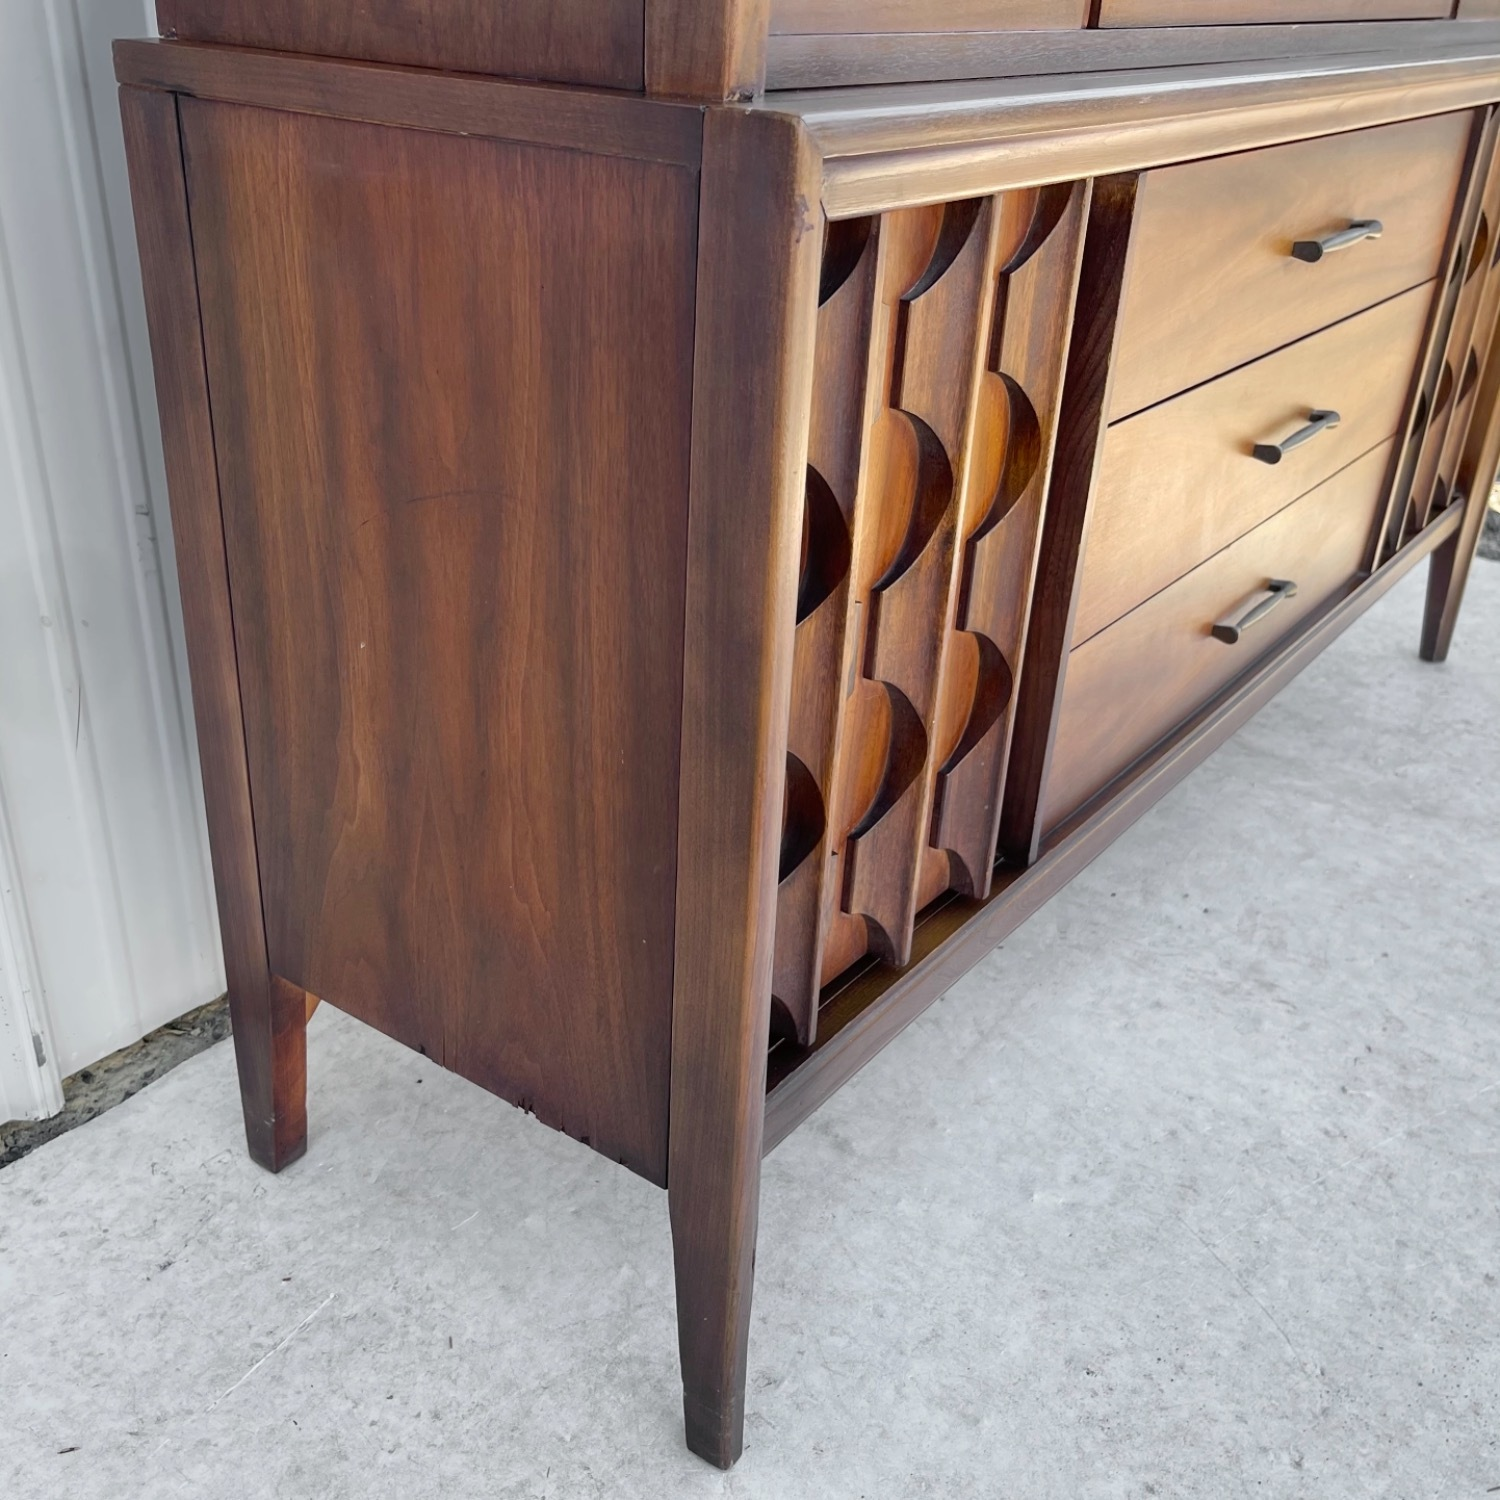 Mid-Century Modern Sideboard With Cabinet - image-5